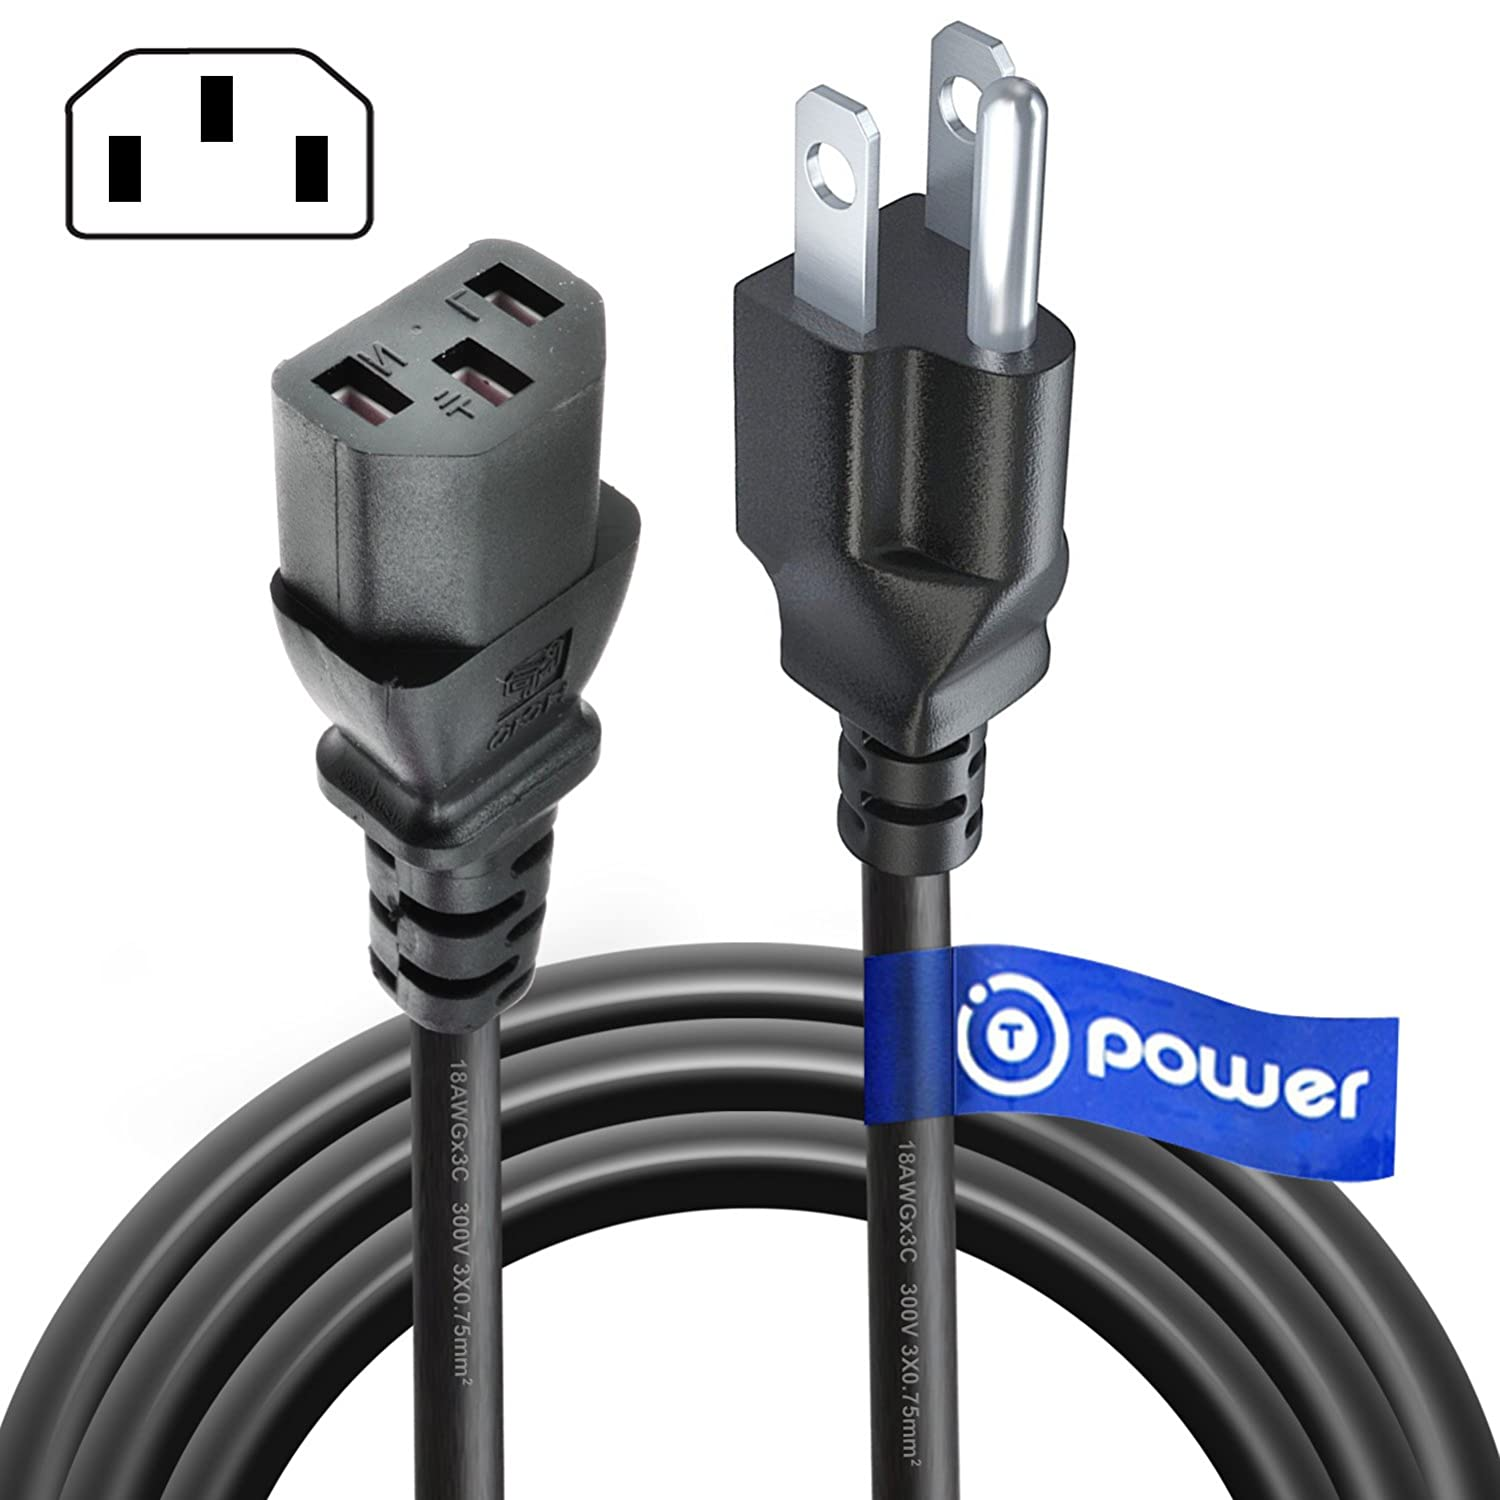 T POWER (4 FT) Long 3 Prong AC Power Cord Compatible with Pressure Cookers, Rice Cookers, Soy Milk Makers, and Other Kitchen Appliances instapot Instant Pot Power Cord Model PC-WAL1 (3pin)